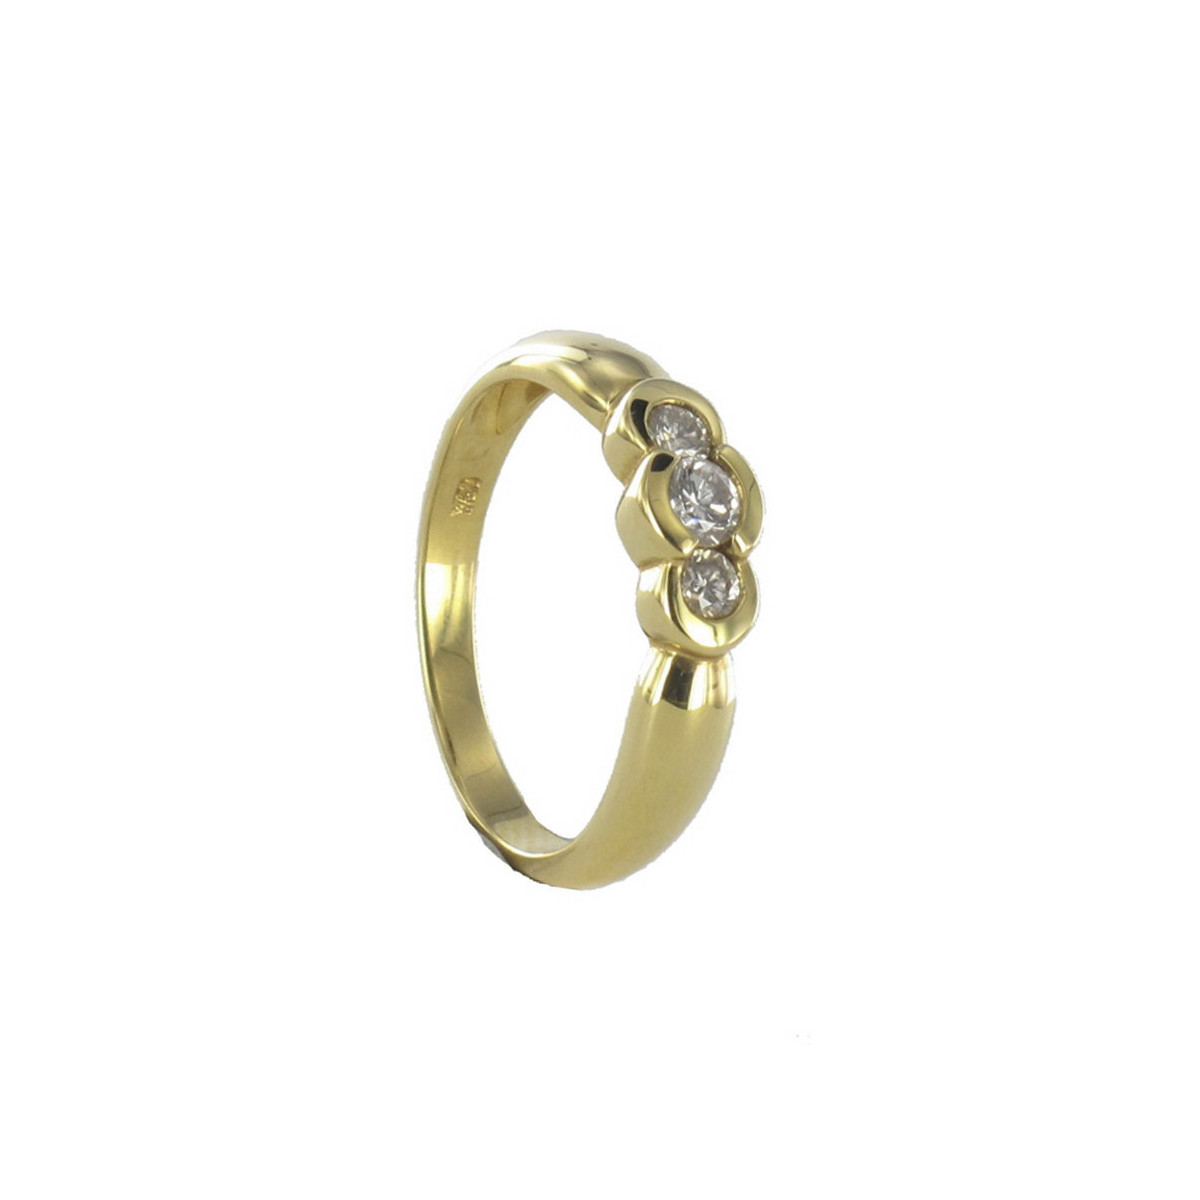 ANILLO ORO AMARILLO 3 DIAMANTES